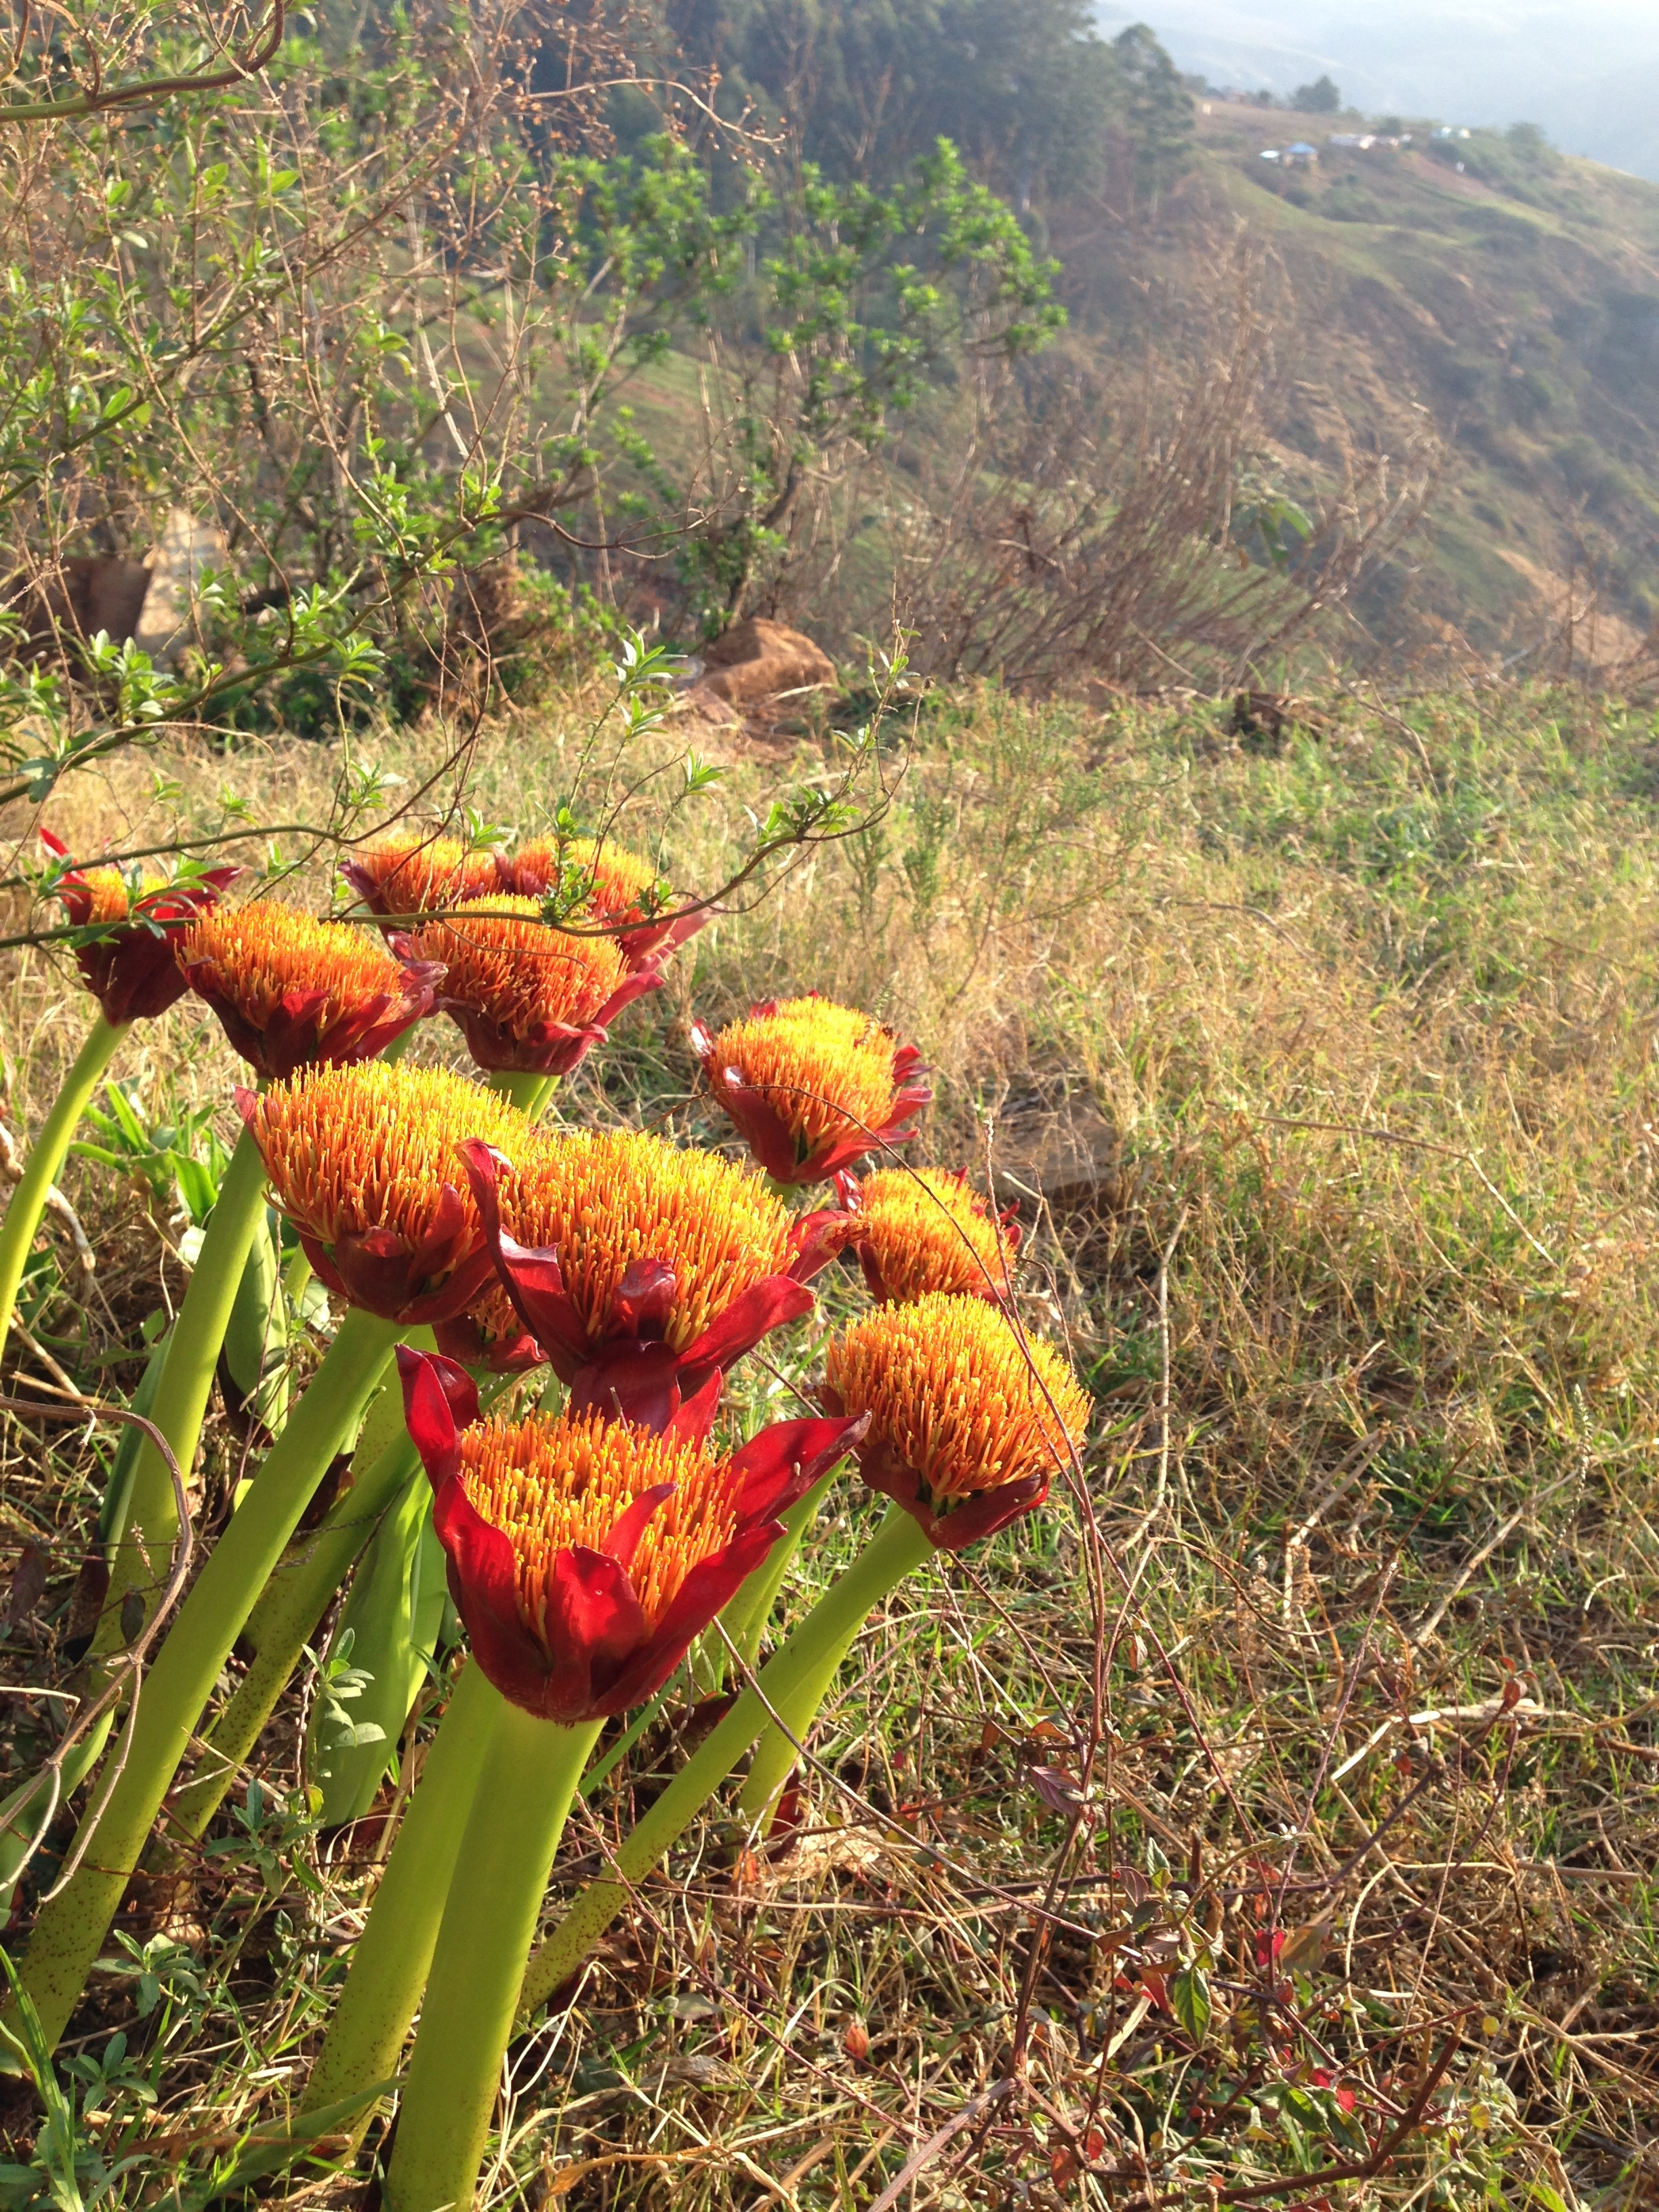 Blooming -  Taken September 2017 in KZN Province, South Africa